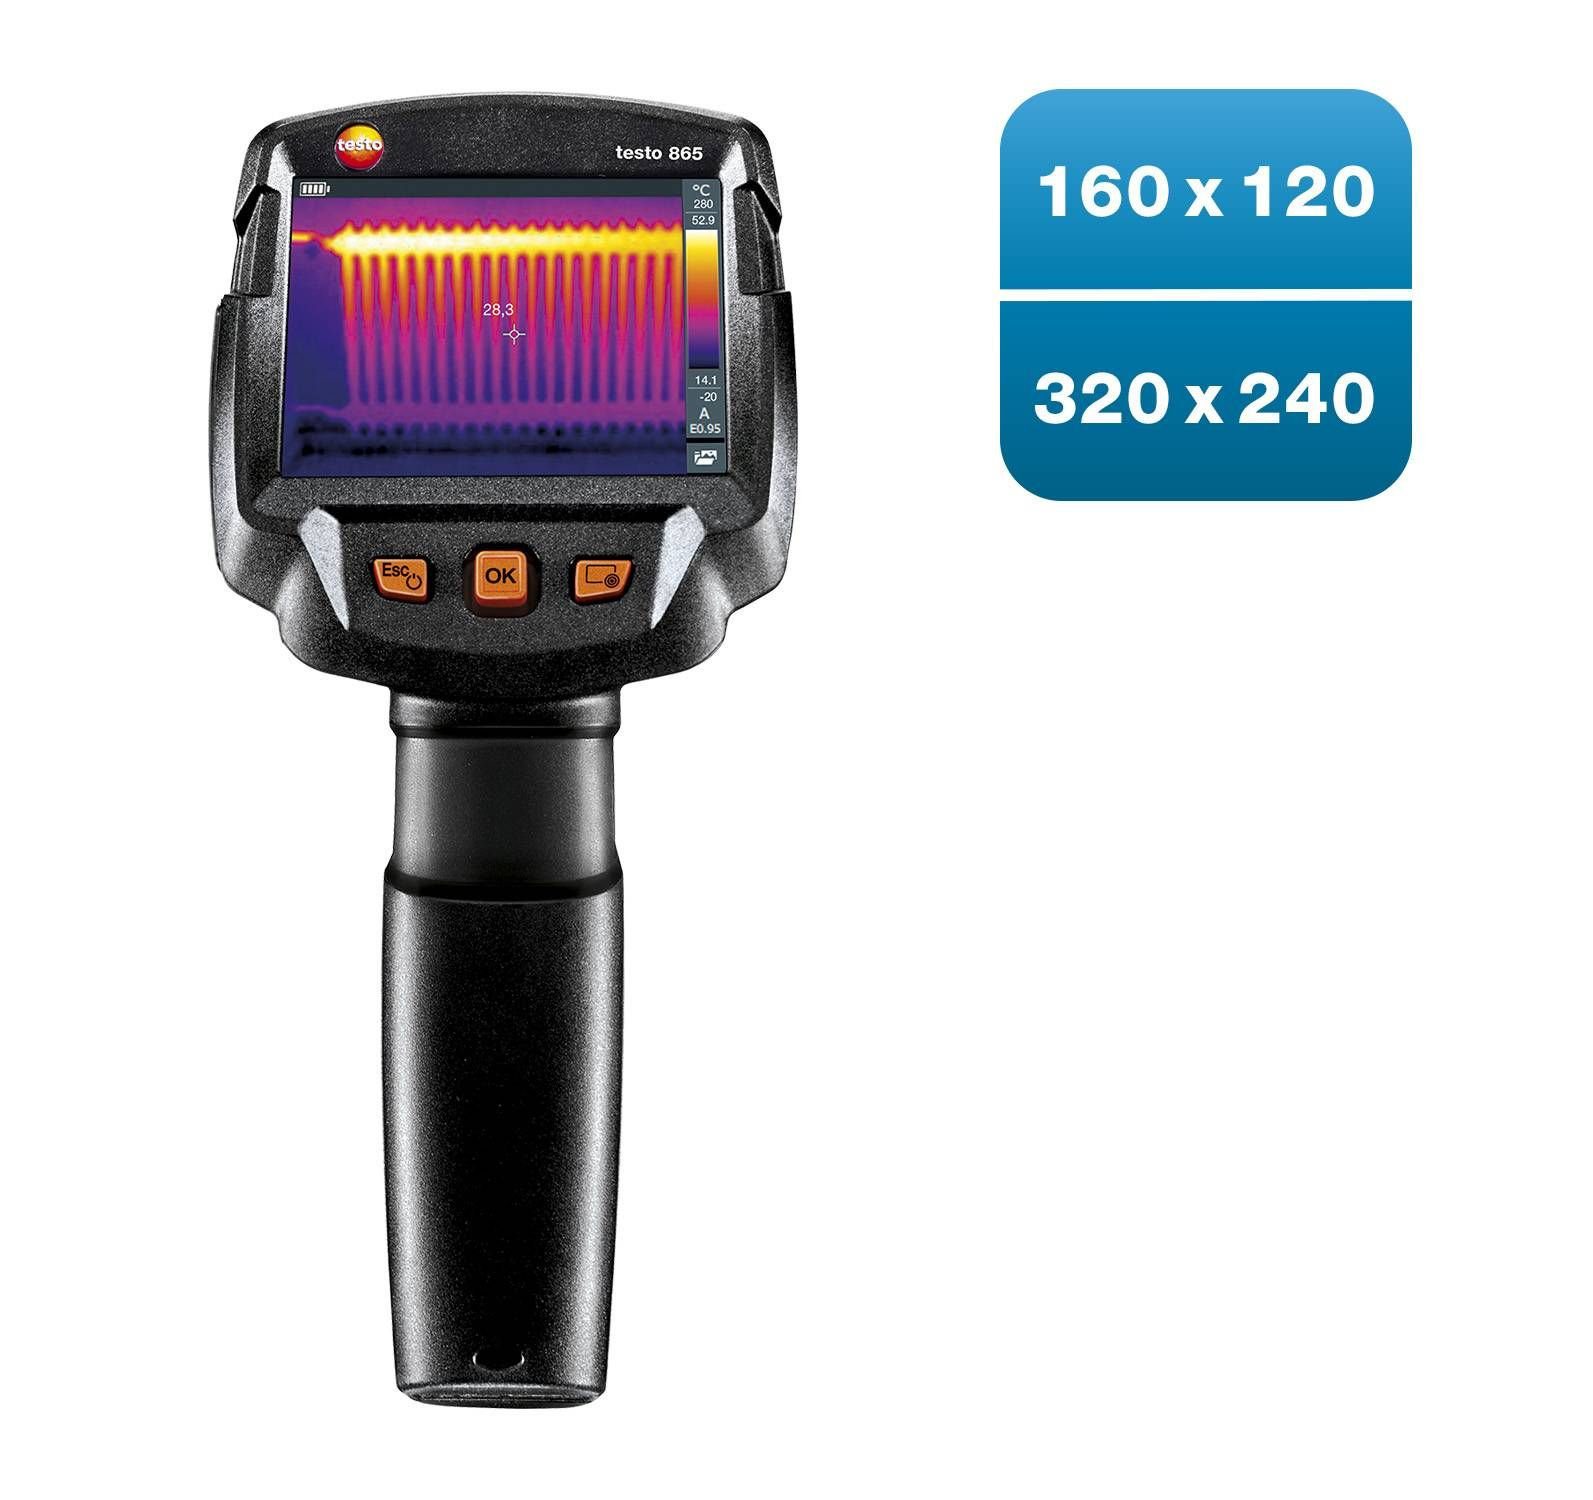 Thermal Camera Manufacturers in India